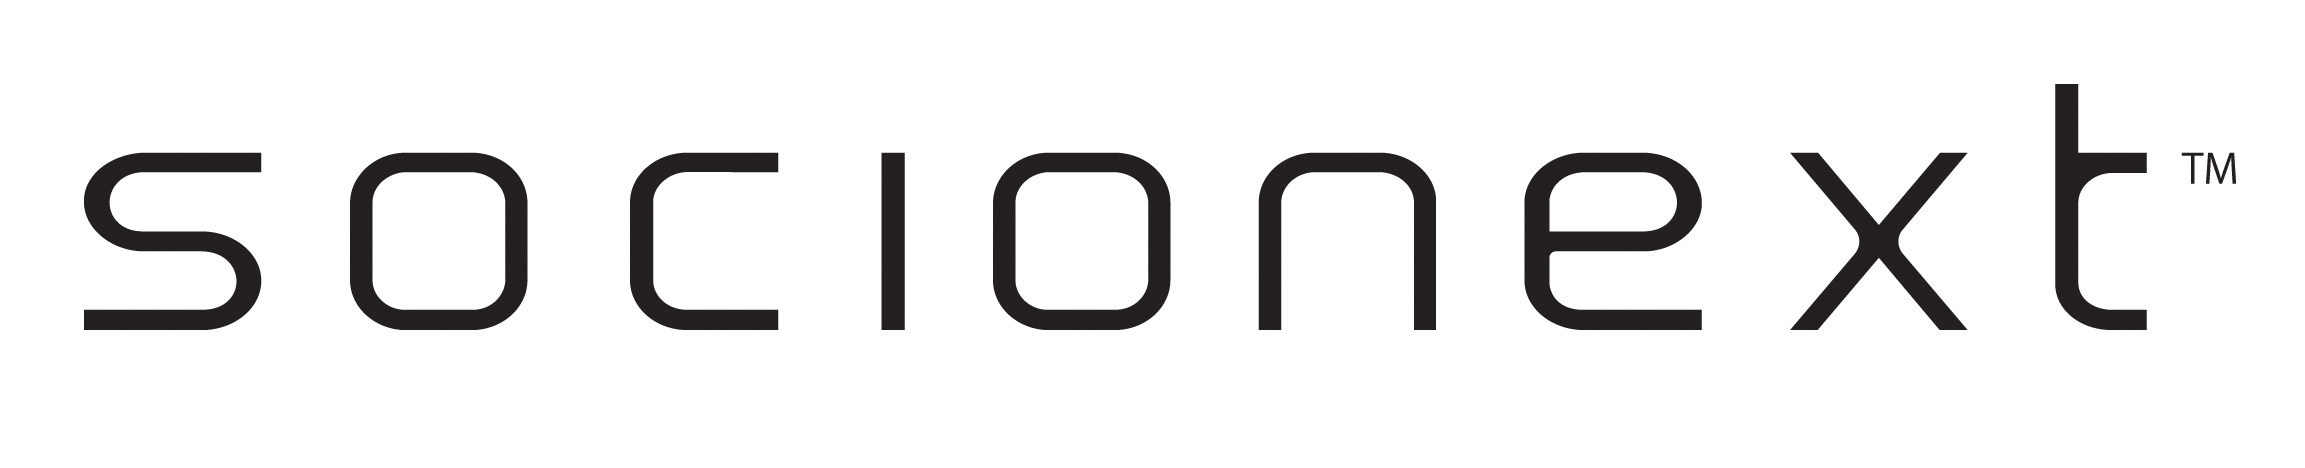 Micron Technology Original Logo Design